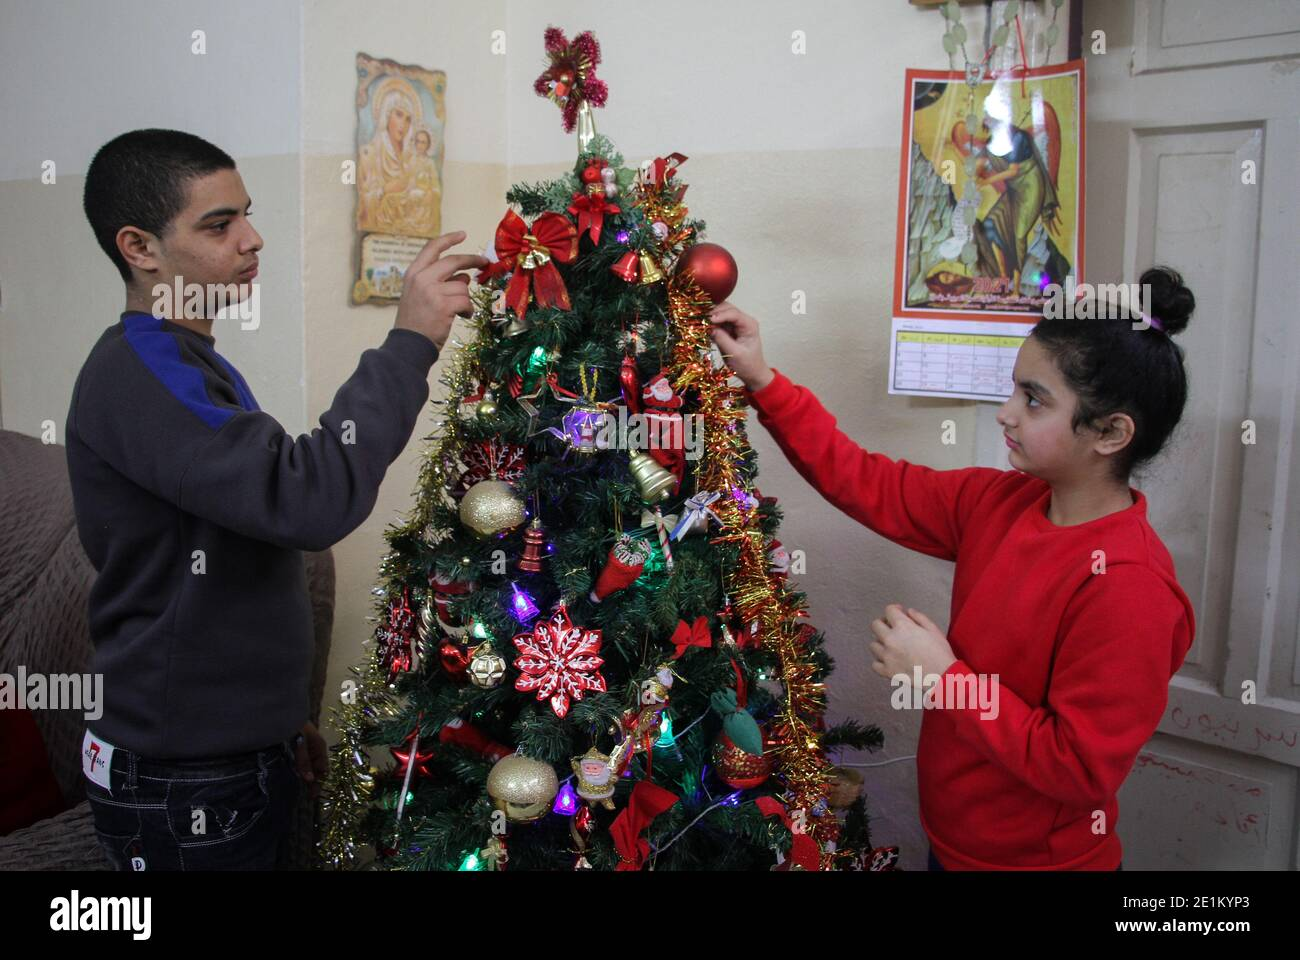 Christmas Parafe Redwood City 2021 7 Days To Christmas High Resolution Stock Photography And Images Alamy